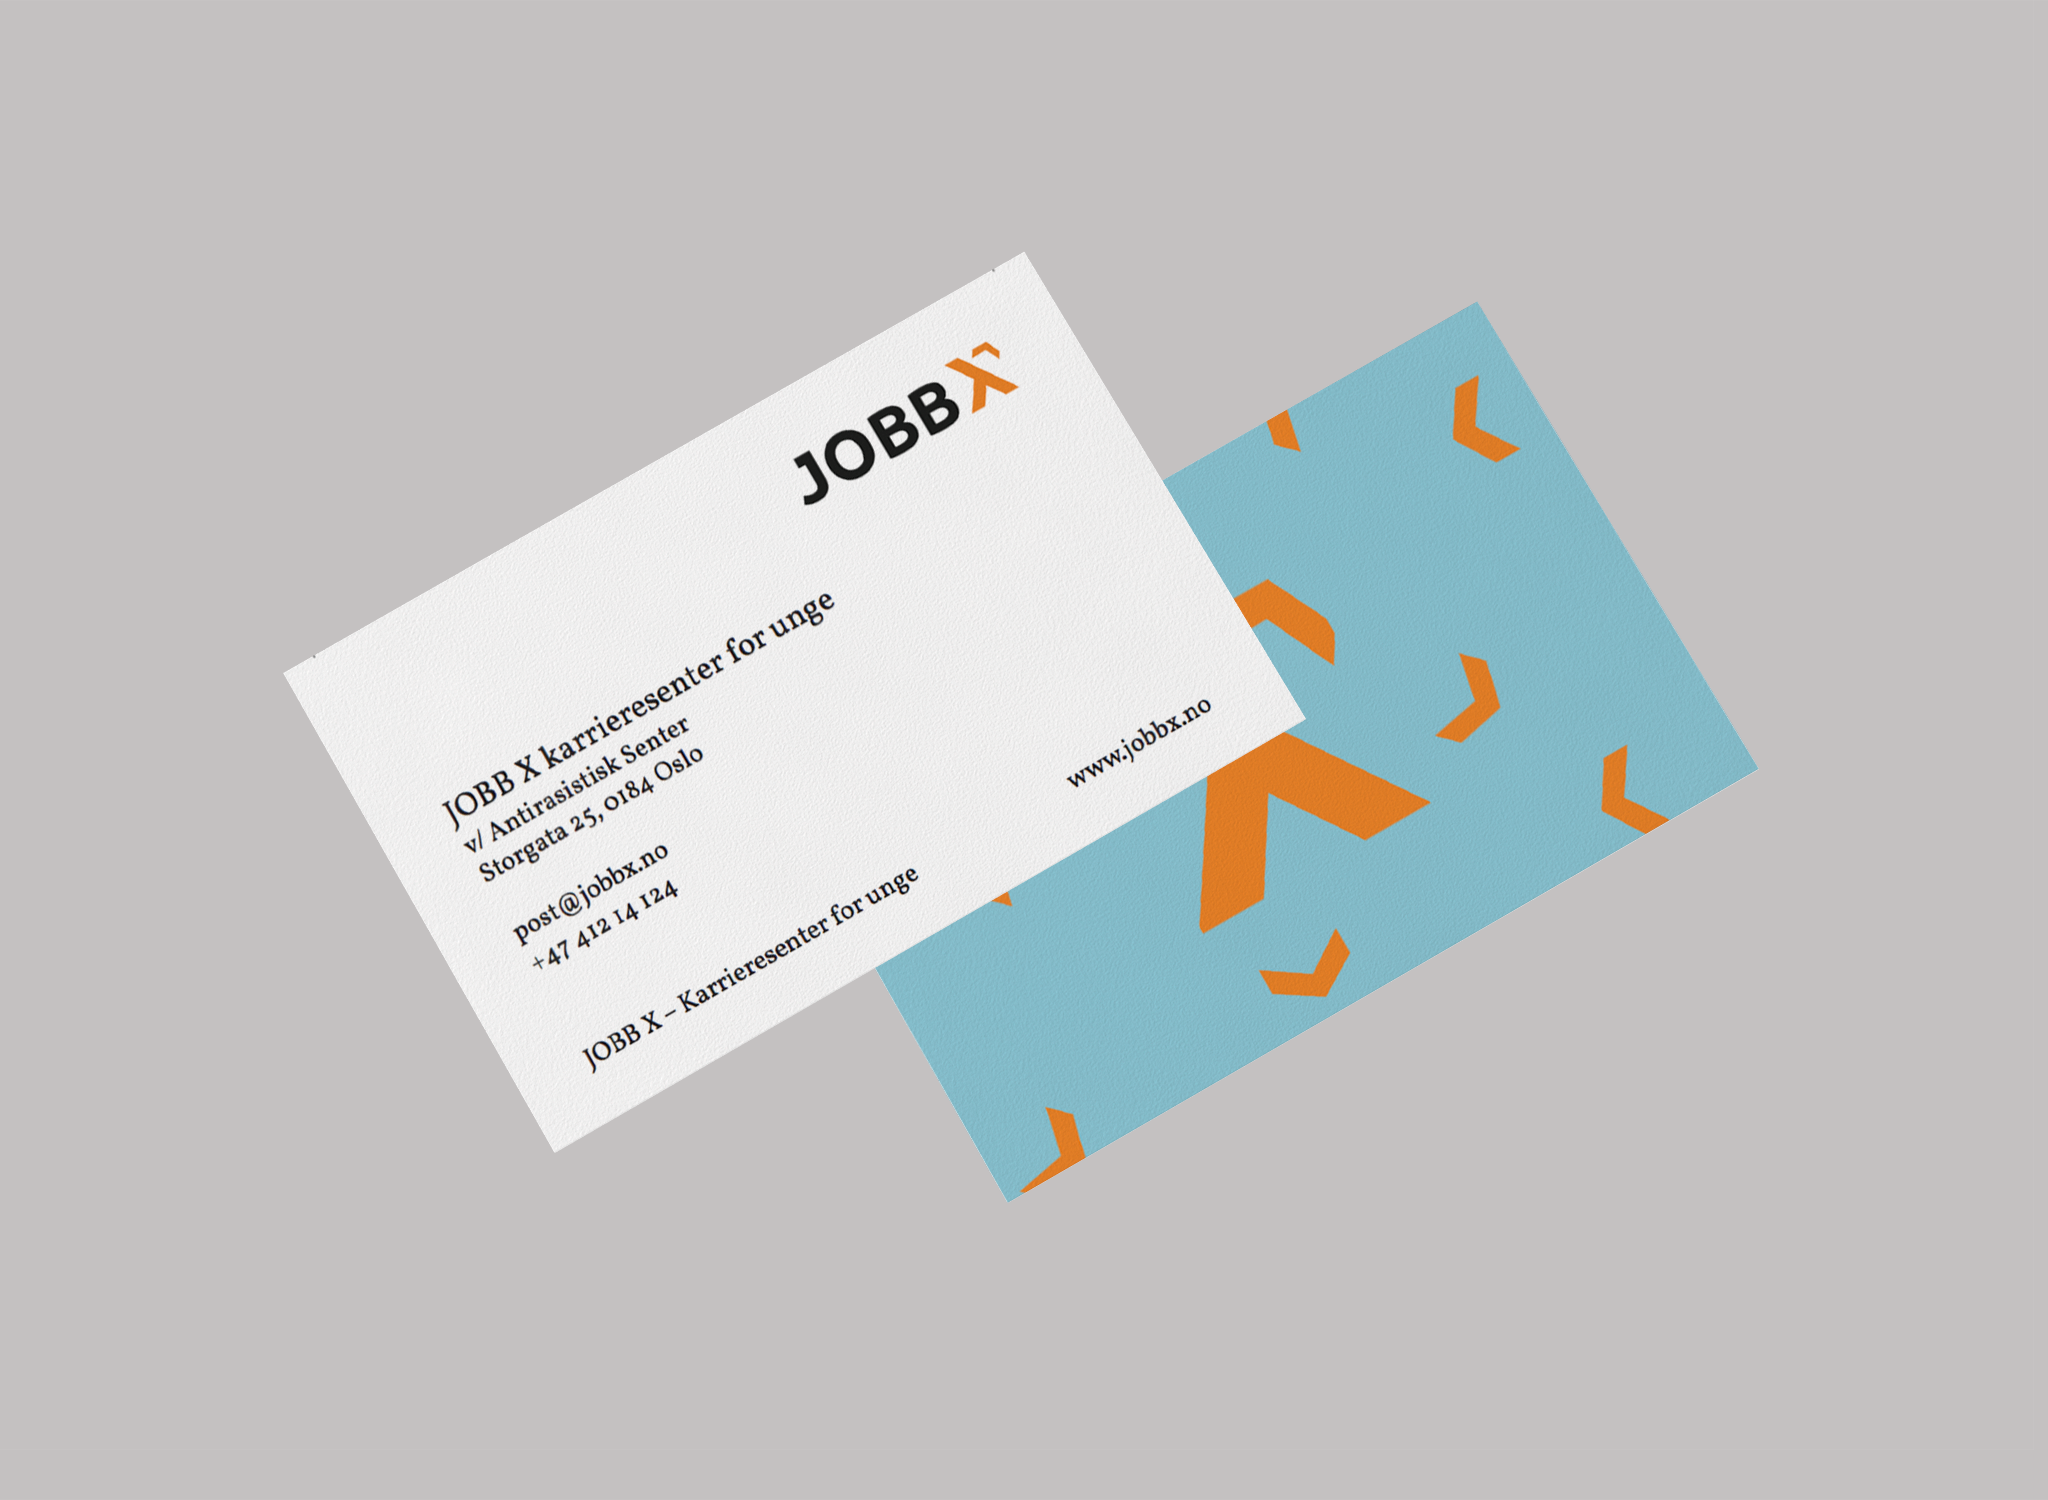 Copy of JOBB X - Visuell profil